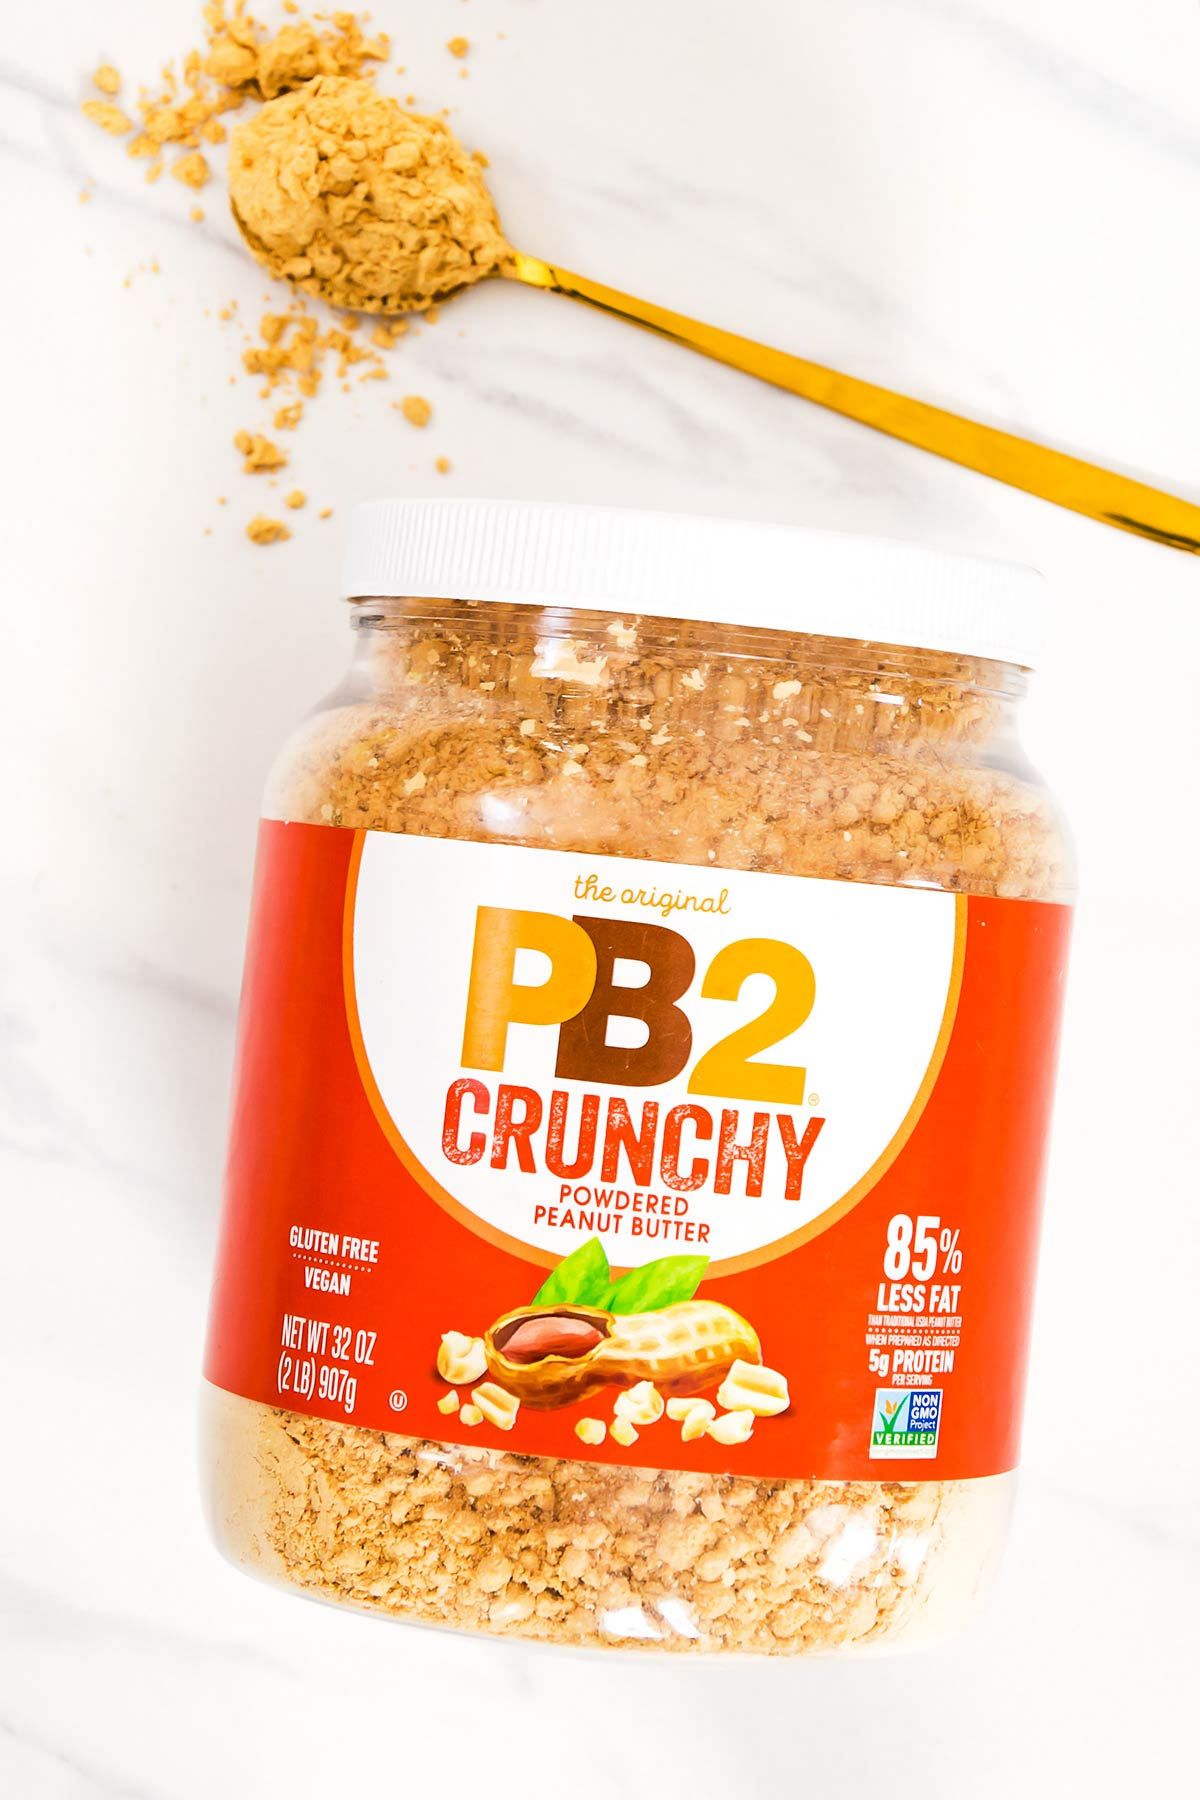 PB2 Crunchy Peanut Powder container with golden spoon of powder